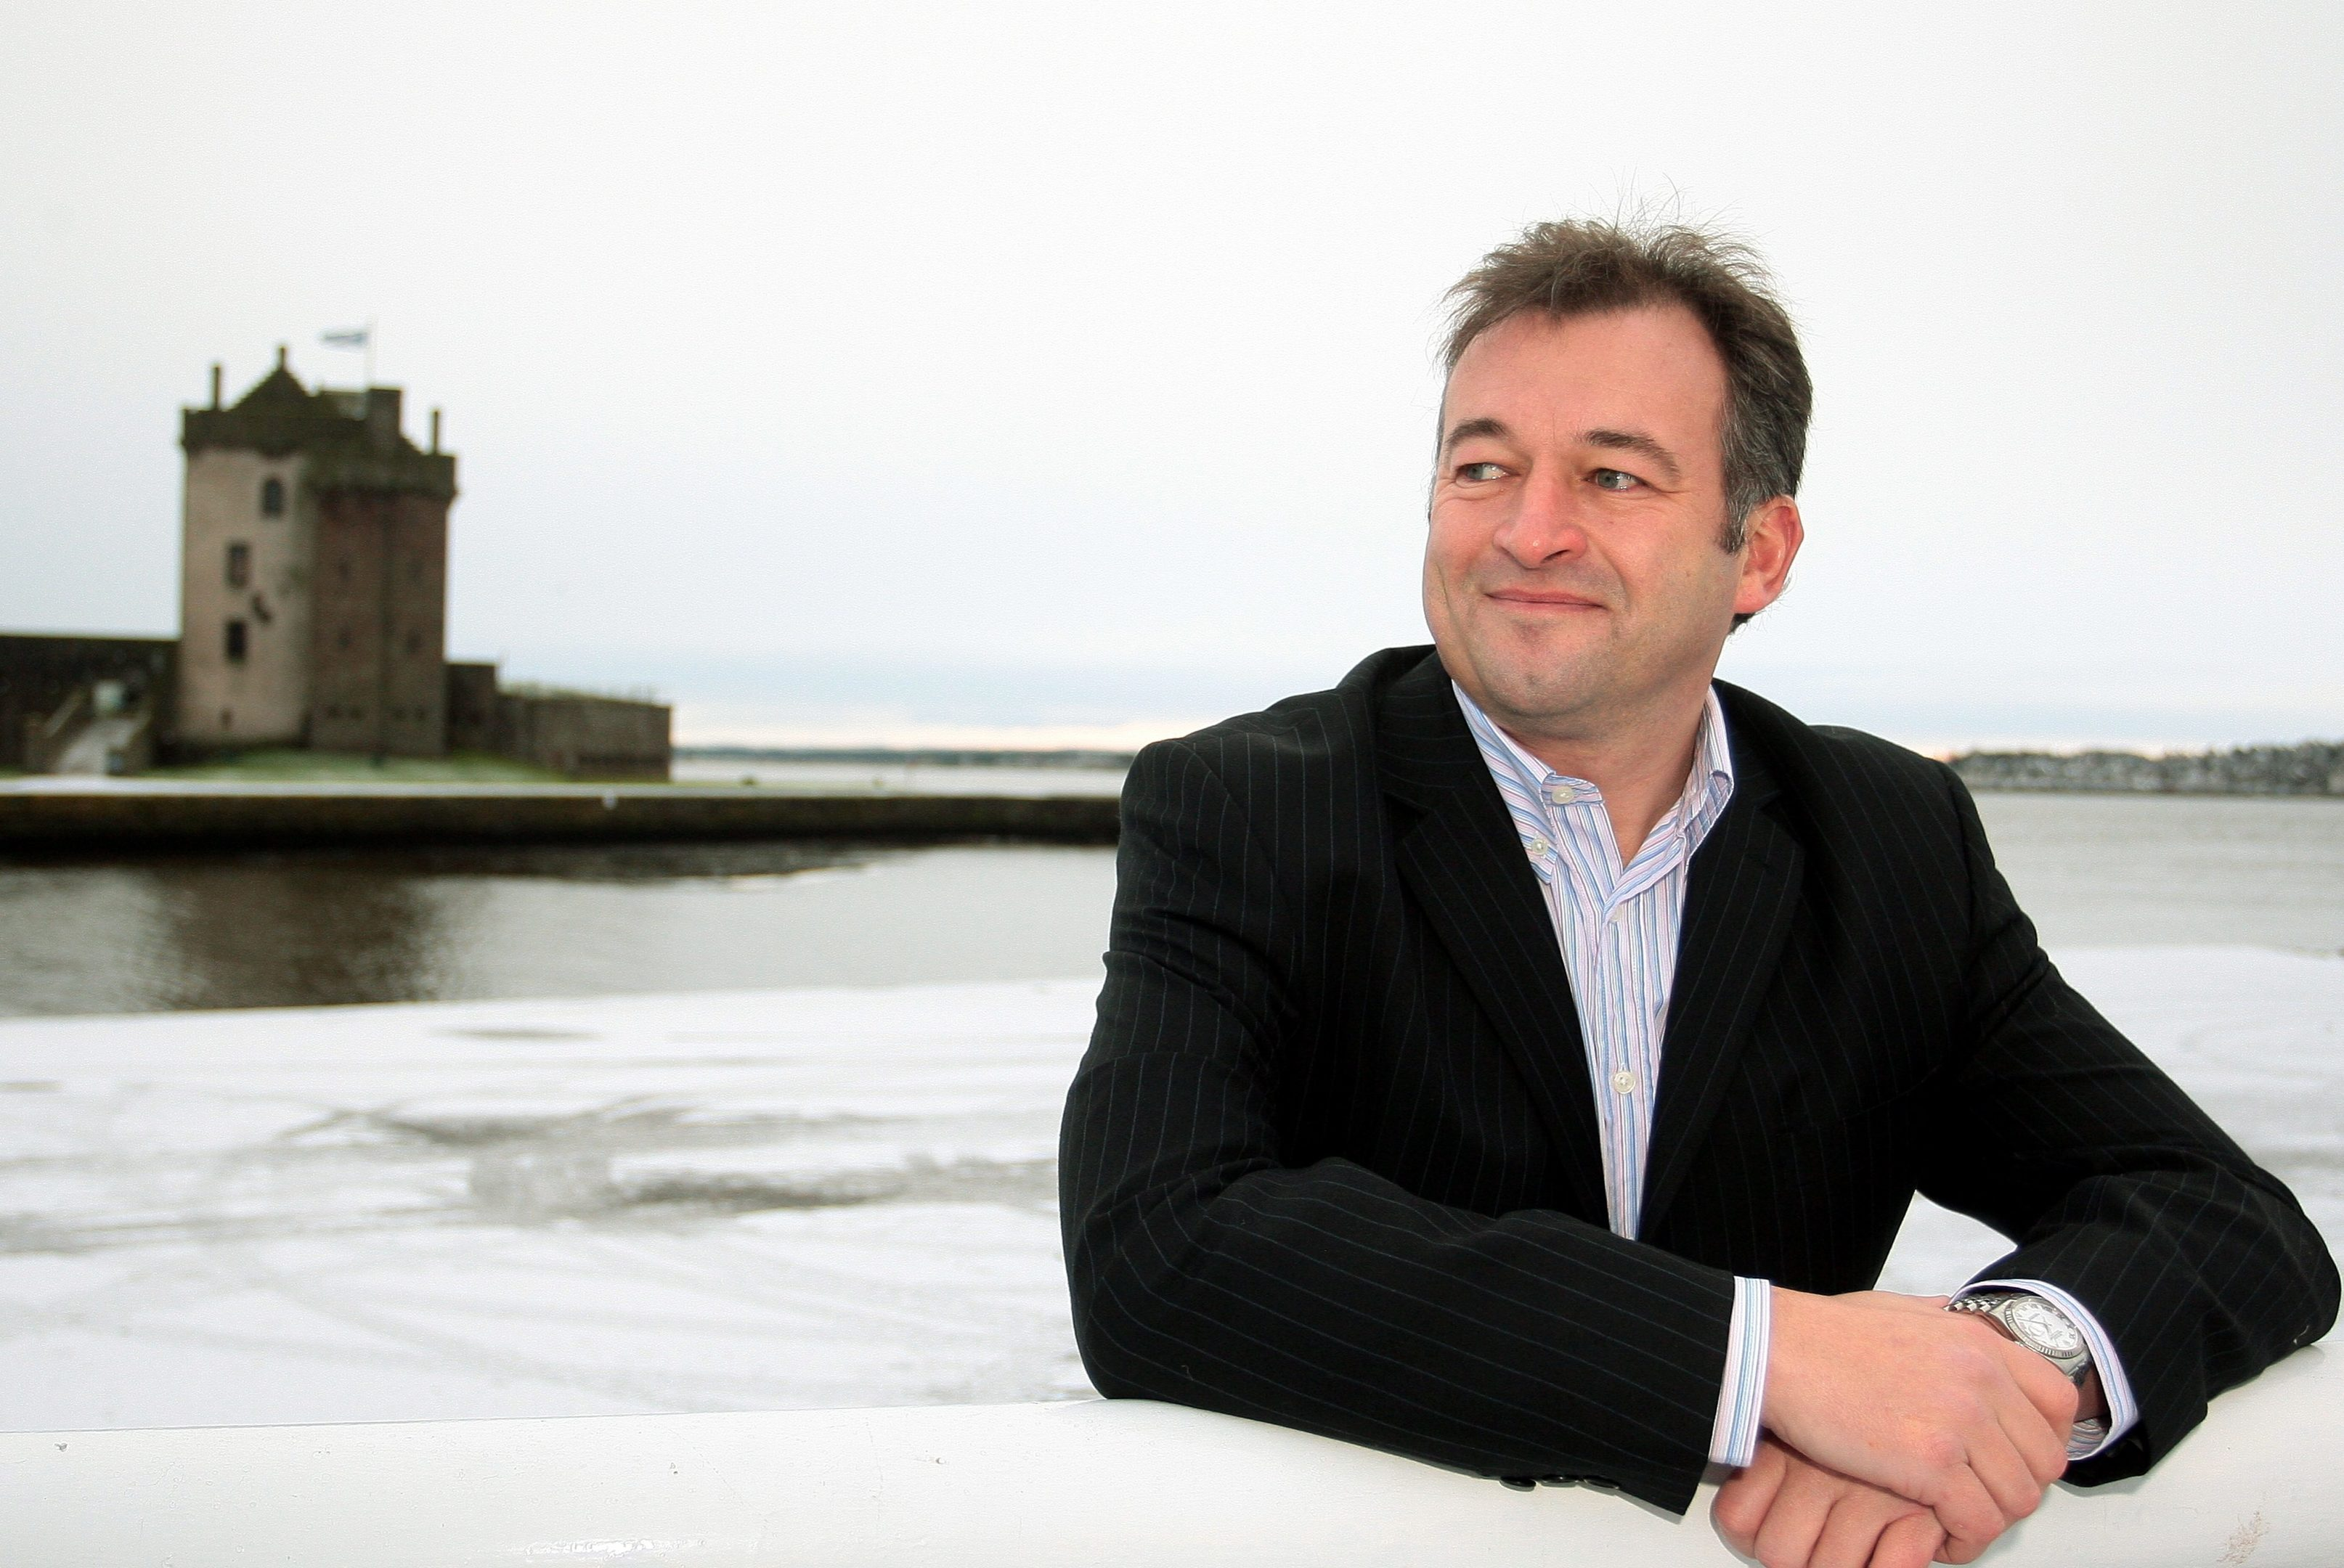 Tony Marks, CEO of Broughty Ferry-based 20/20 Business Insight